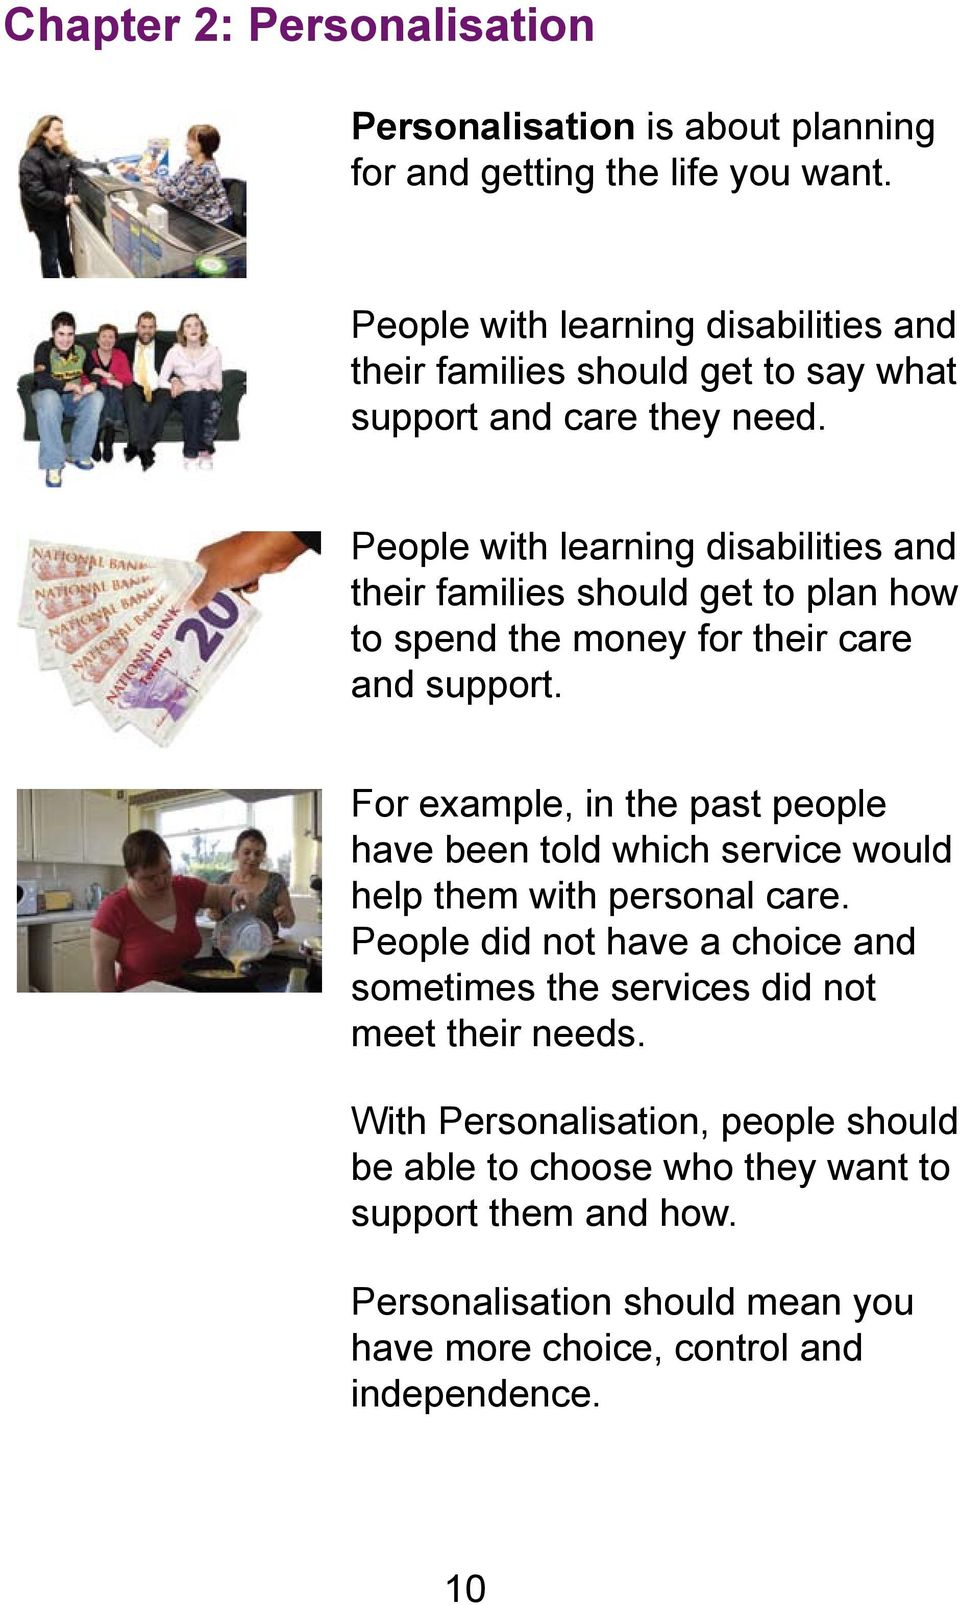 People with learning disabilities and their families should get to plan how to spend the money for their care and support.